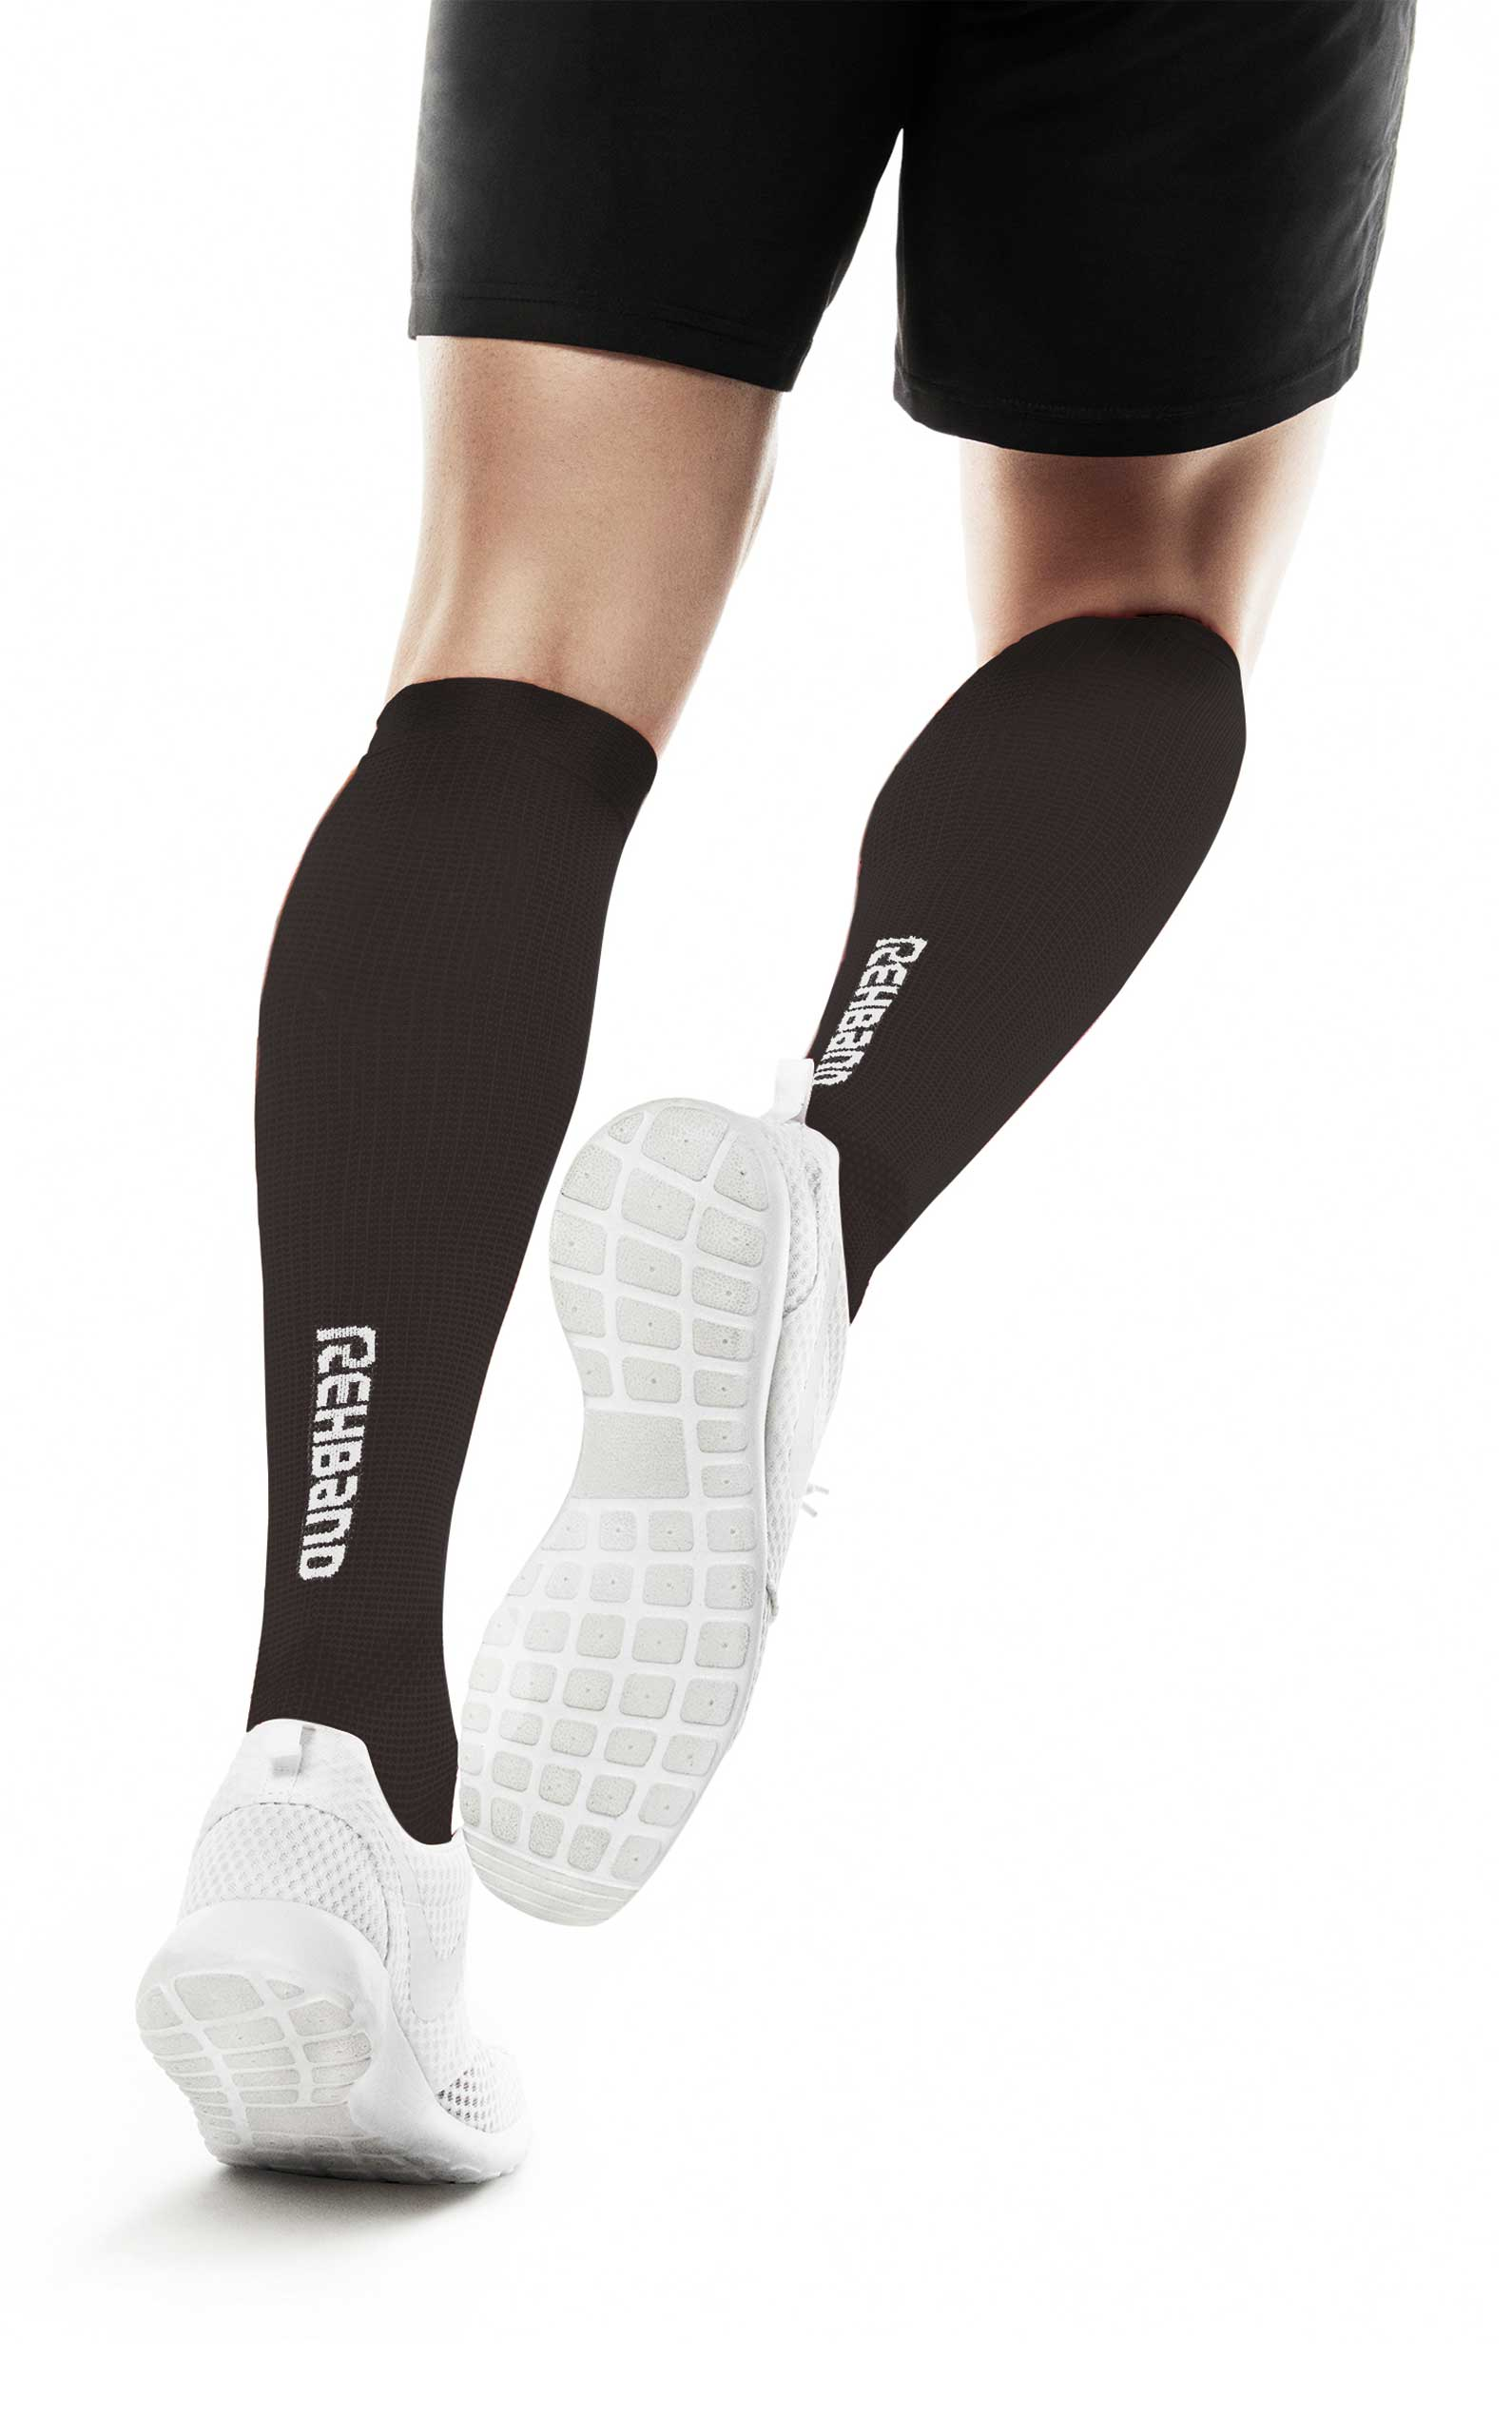 QD Compression Socks